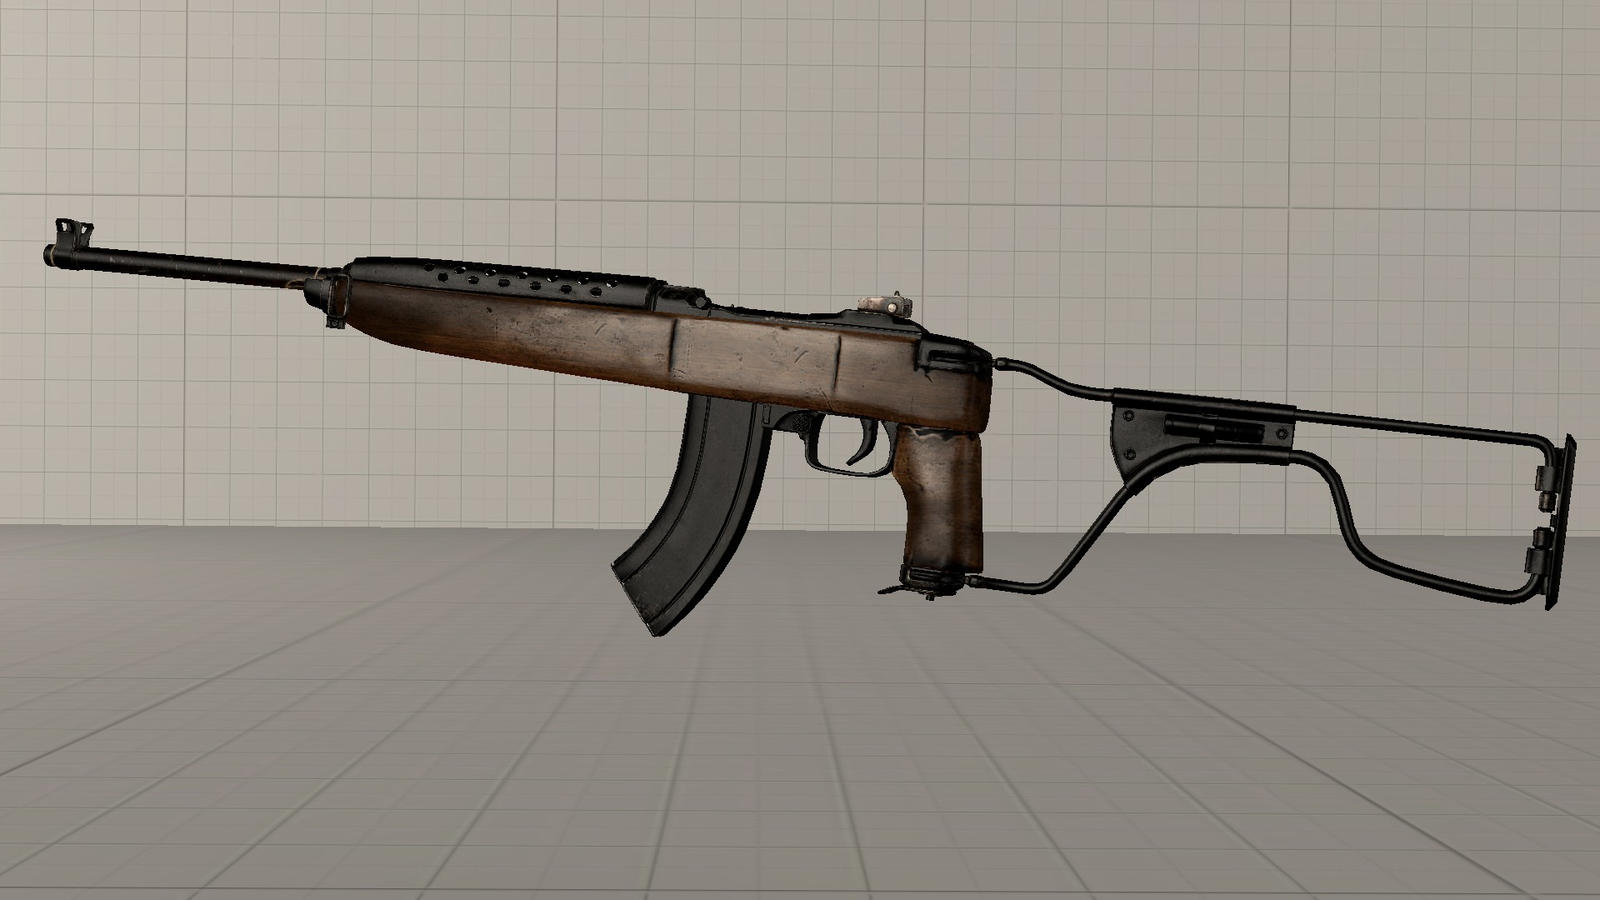 CoD WW2 Winchester M2 Carbine with folding stock by